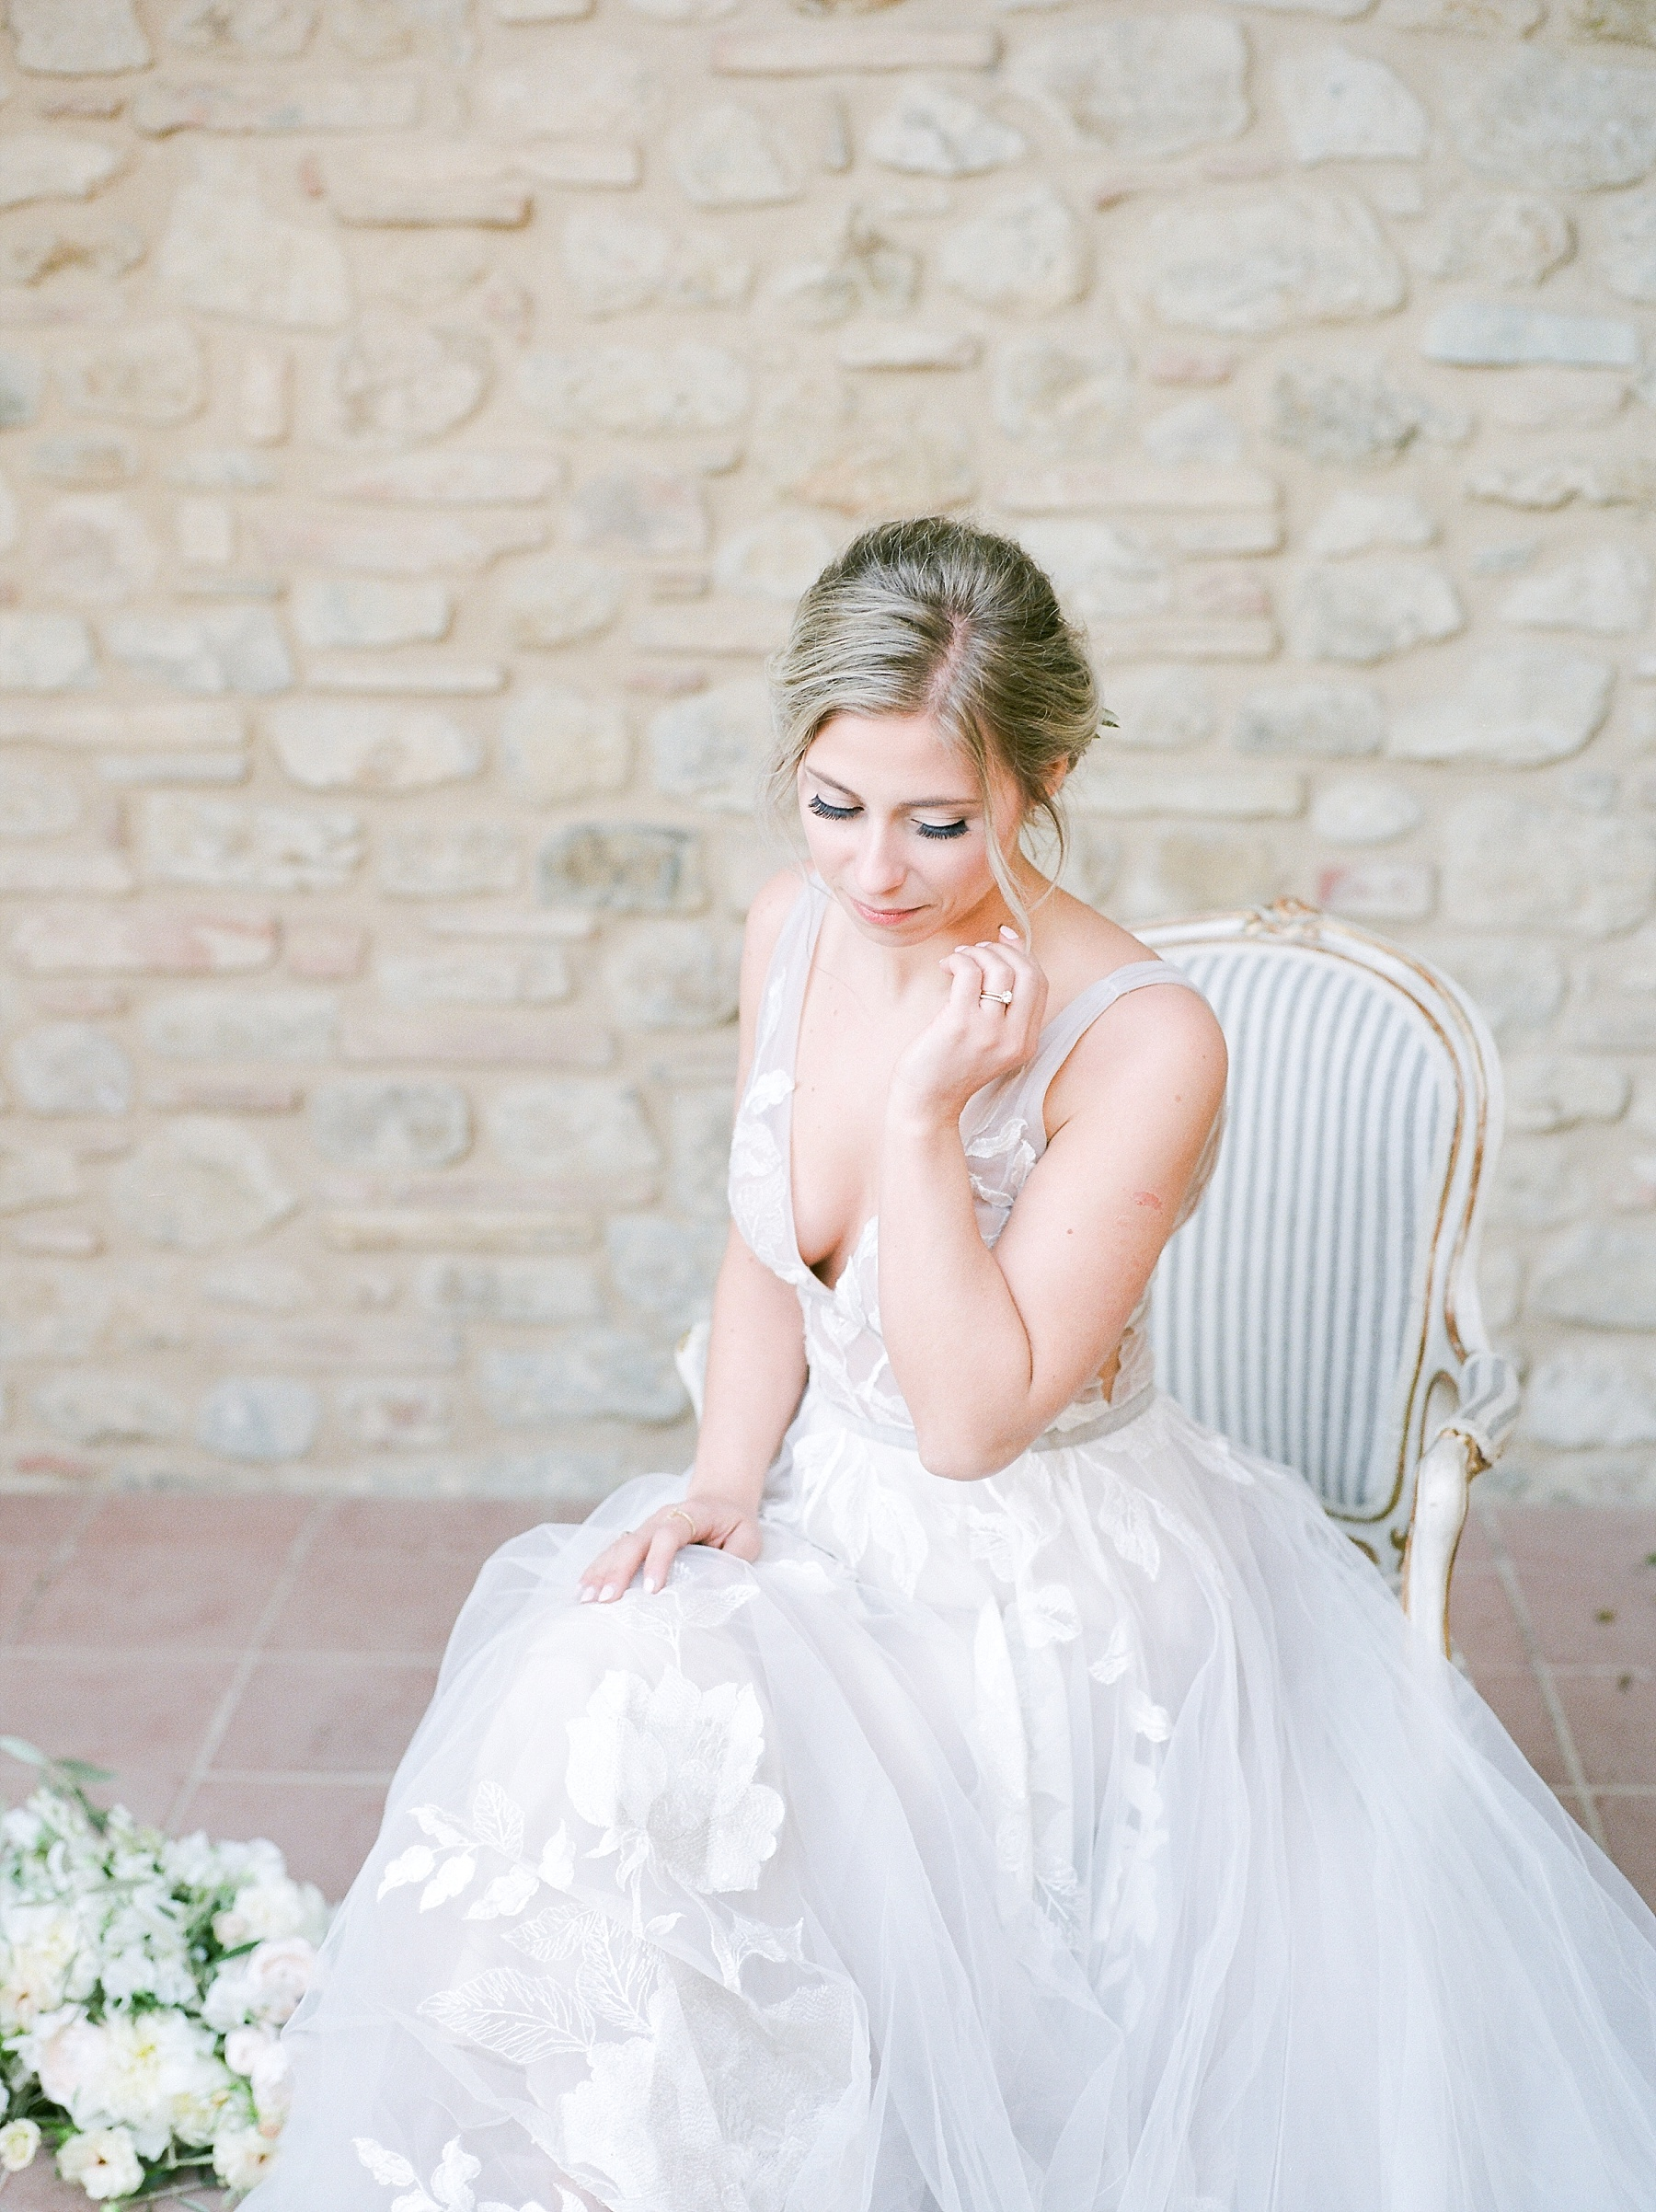 All White Destination Wedding in the Hills of Tuscany Italy at Estate Borgo Petrognano by Kelsi Kliethermes Photography_0040.jpg